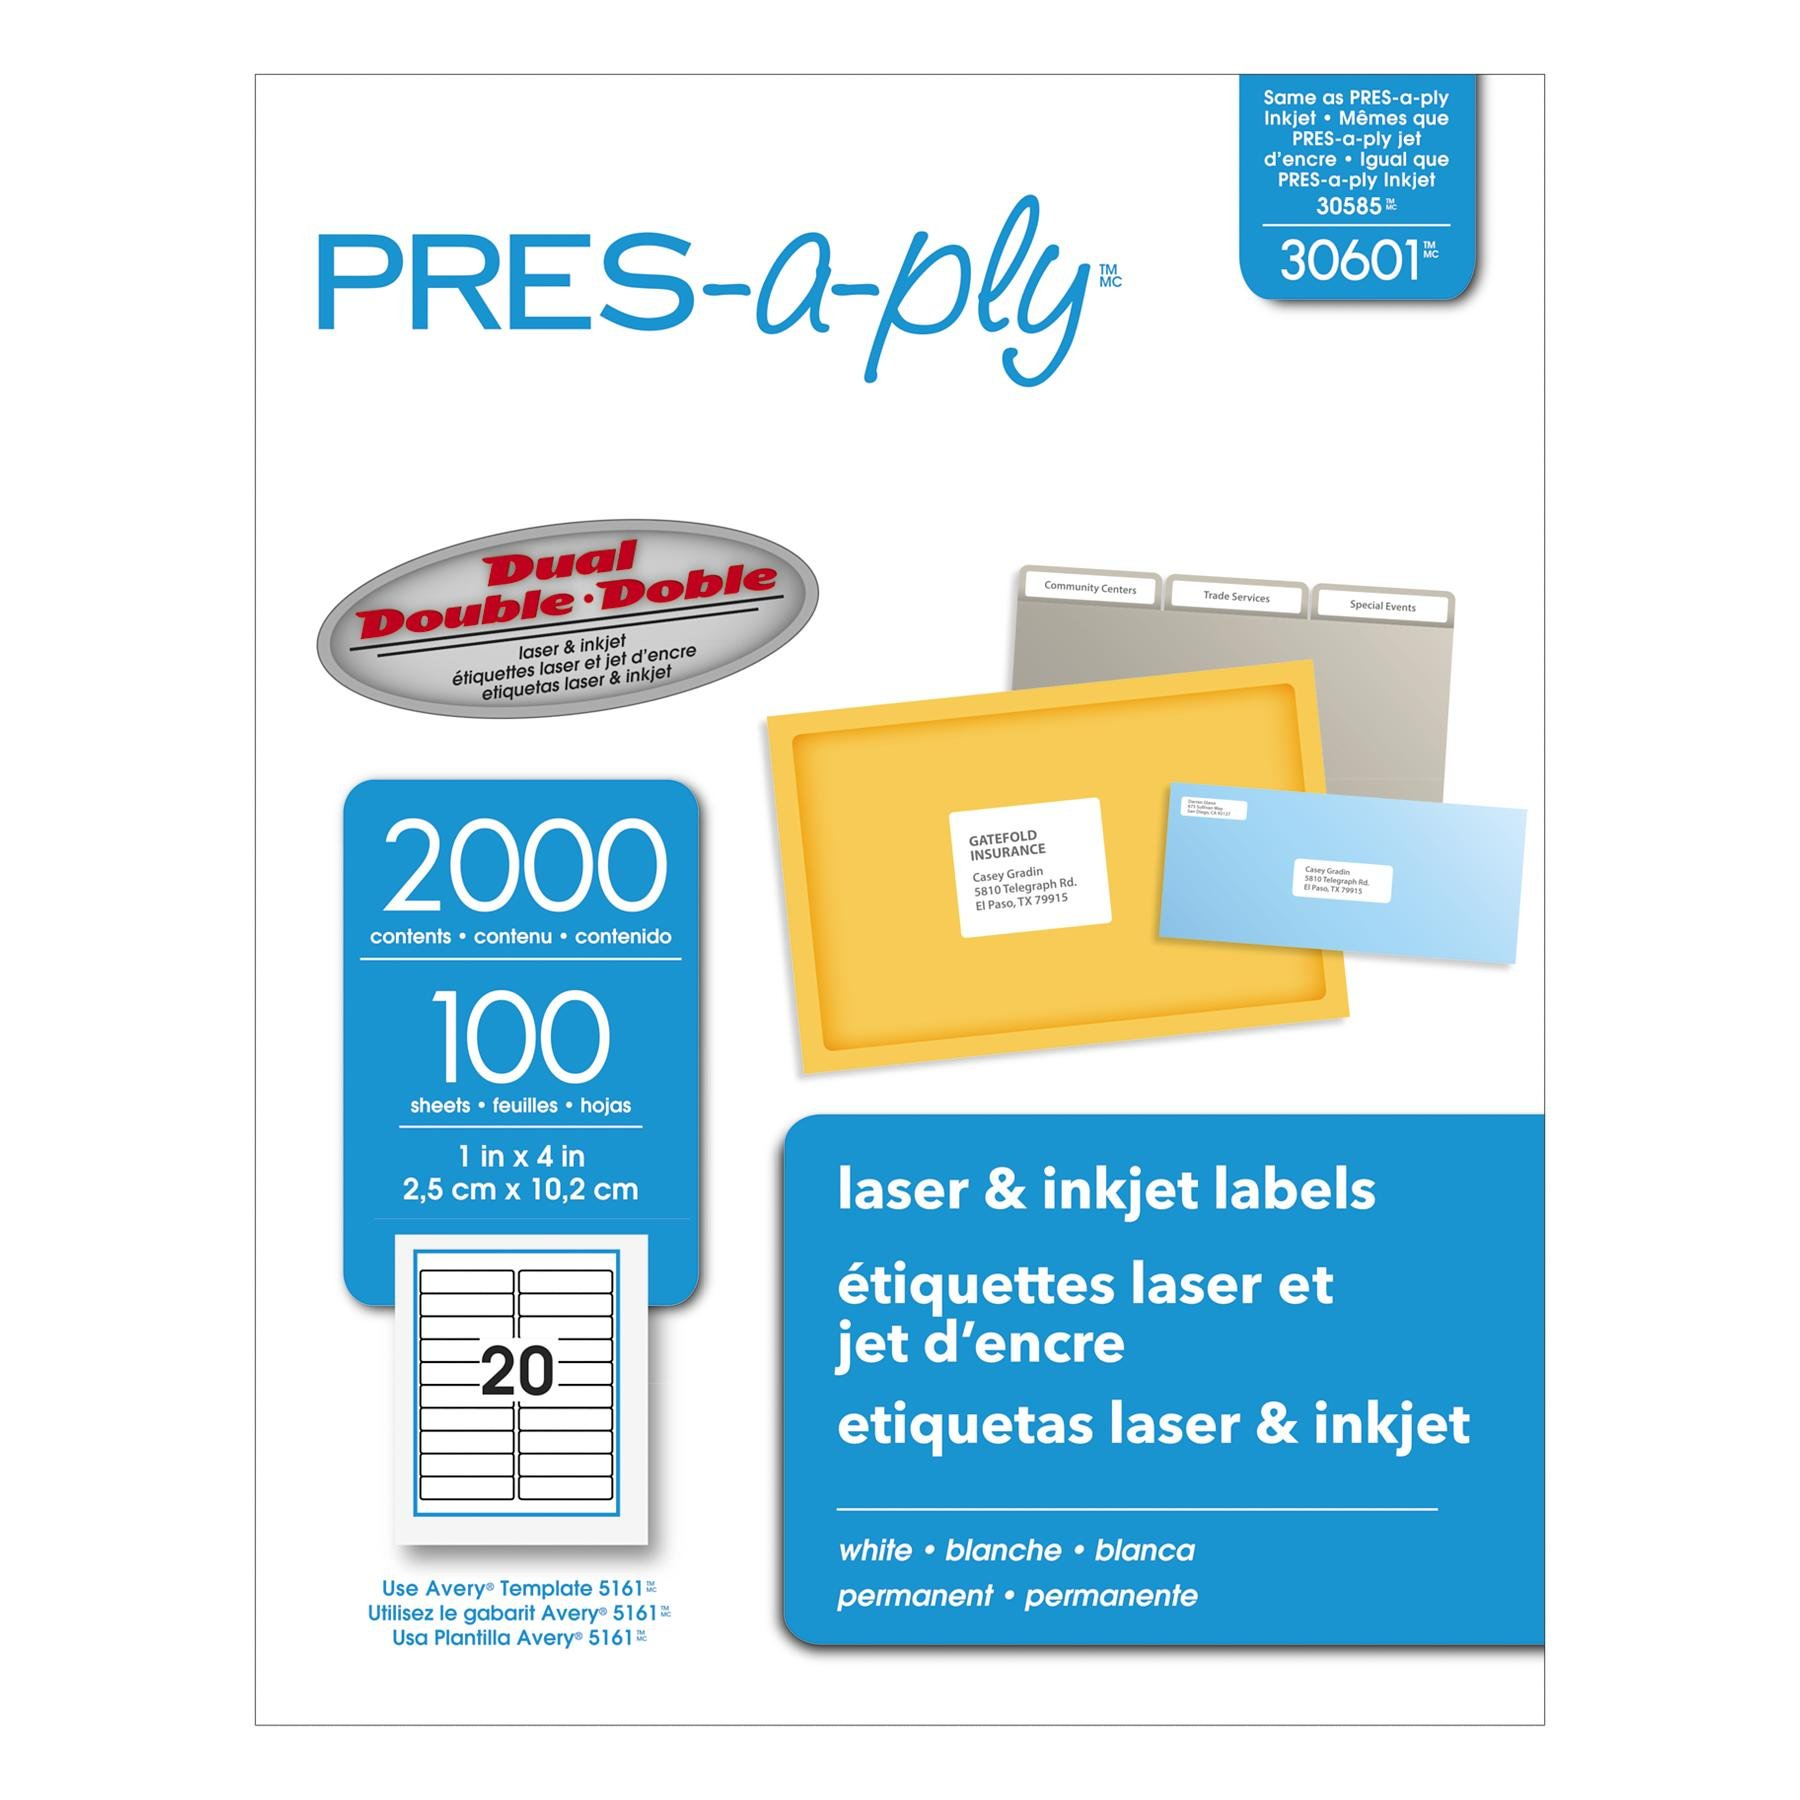 Pres-a-ply Laser Labels, 1 x 4 Inch, White, 2000 Count (30601)